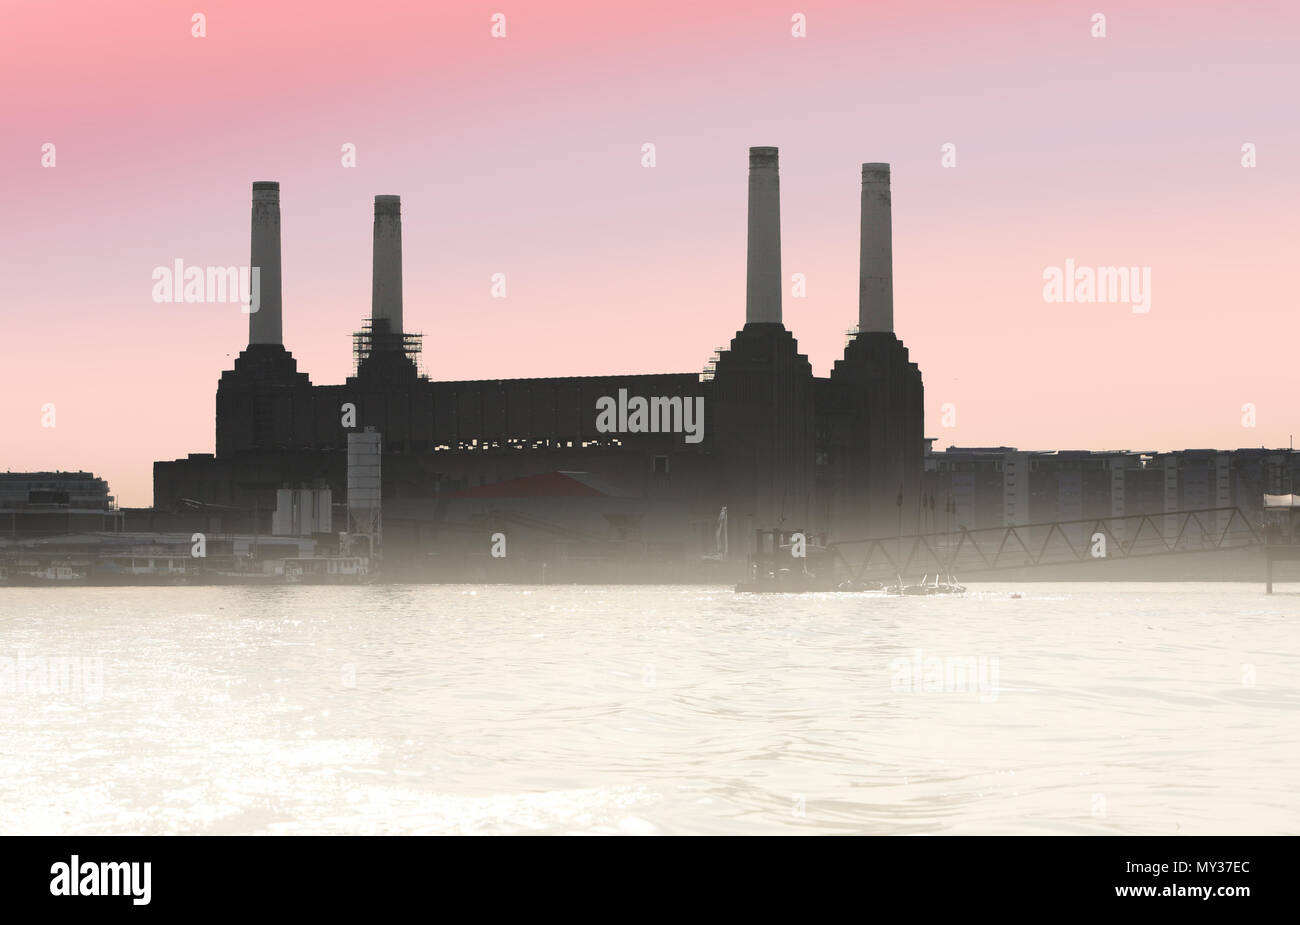 Battersea Power Station an iconic London landmark seen from the river Thames. London - Stock Image